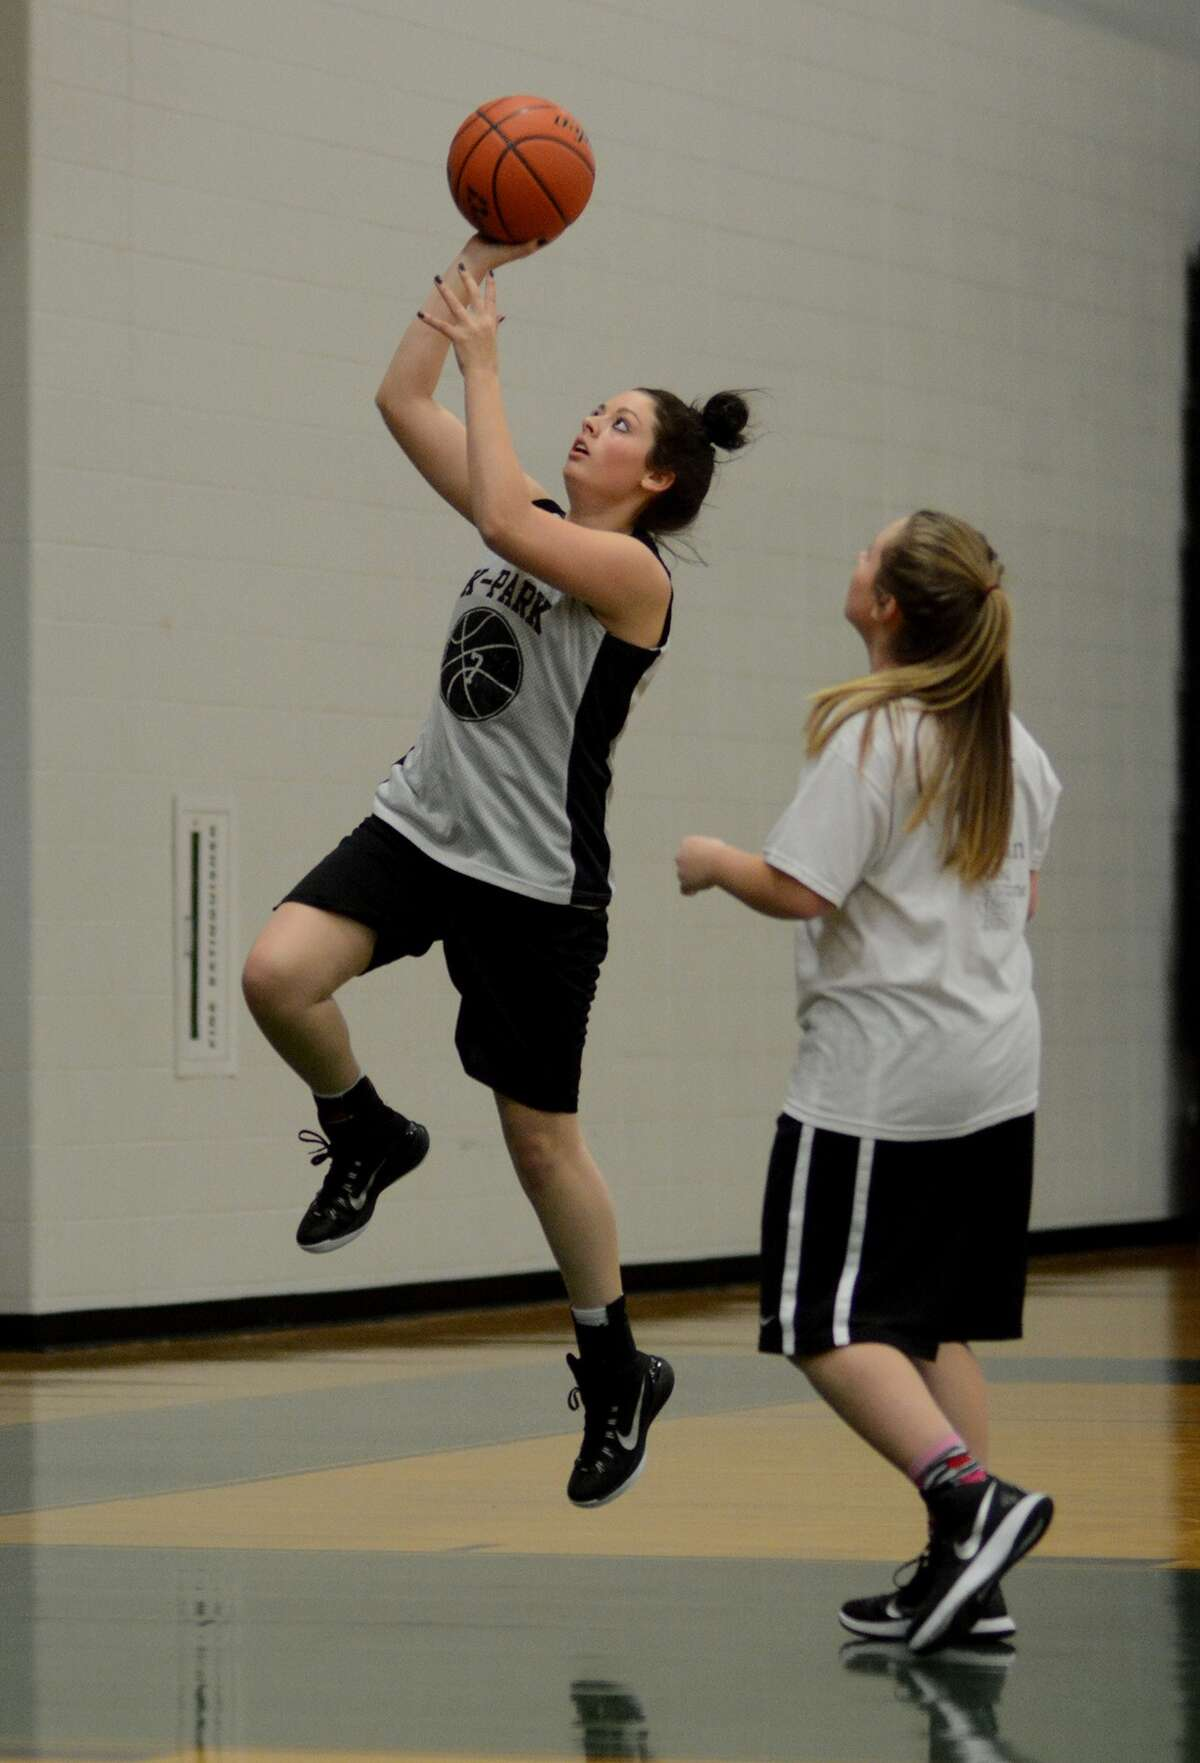 Kingwood Park senior Brooke Skero works during a lay-up drill at team practice on Jan. 26.